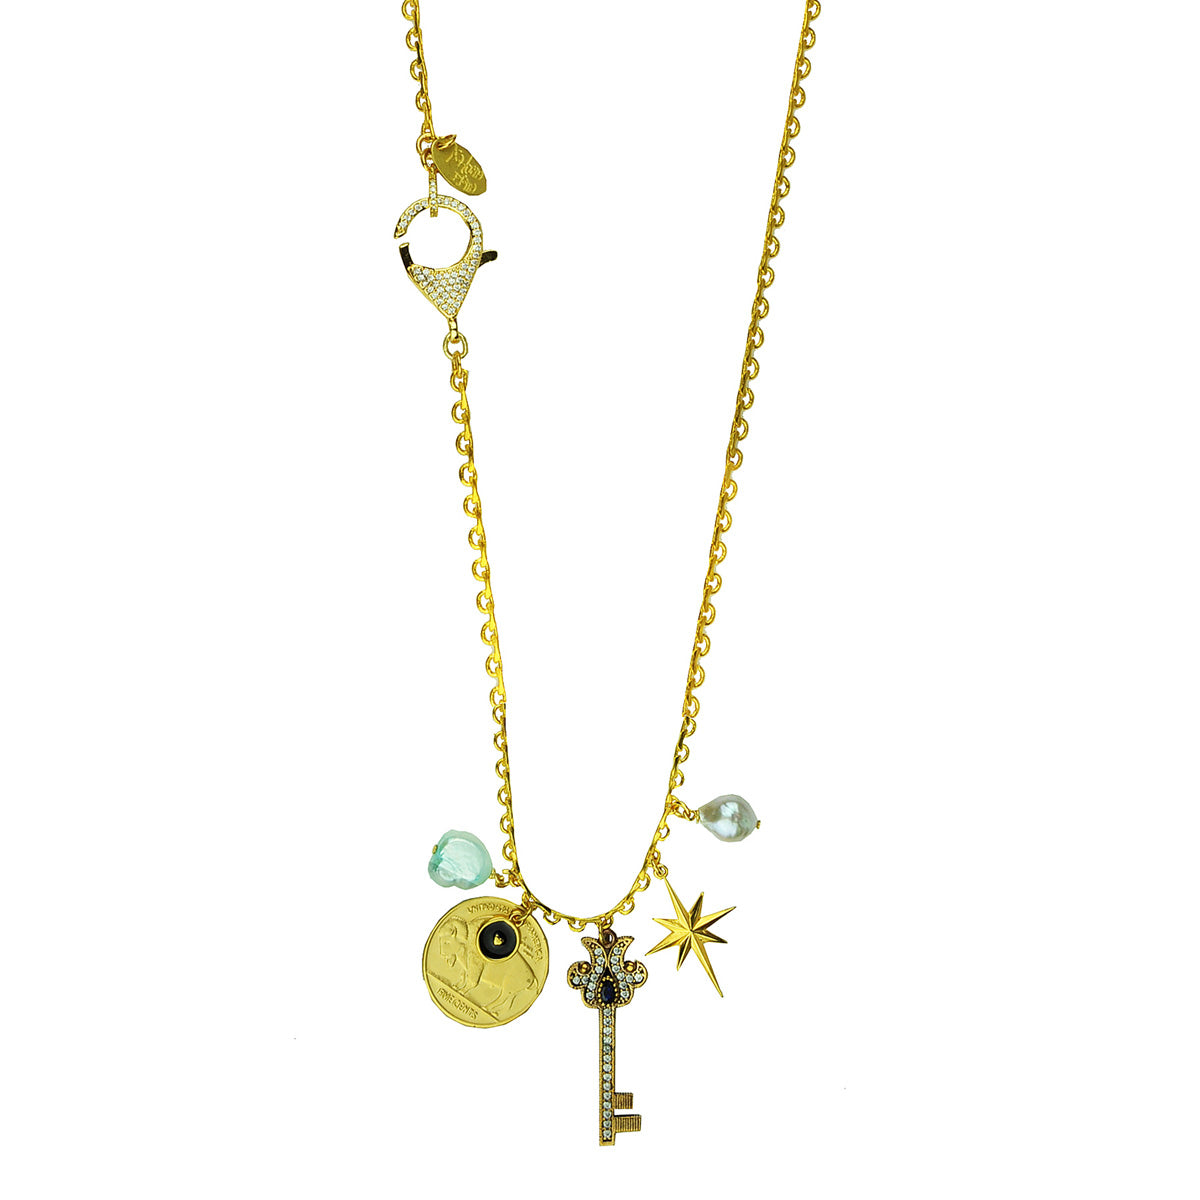 gold plated chain necklace with charms and a crystal key adornment katerina psoma